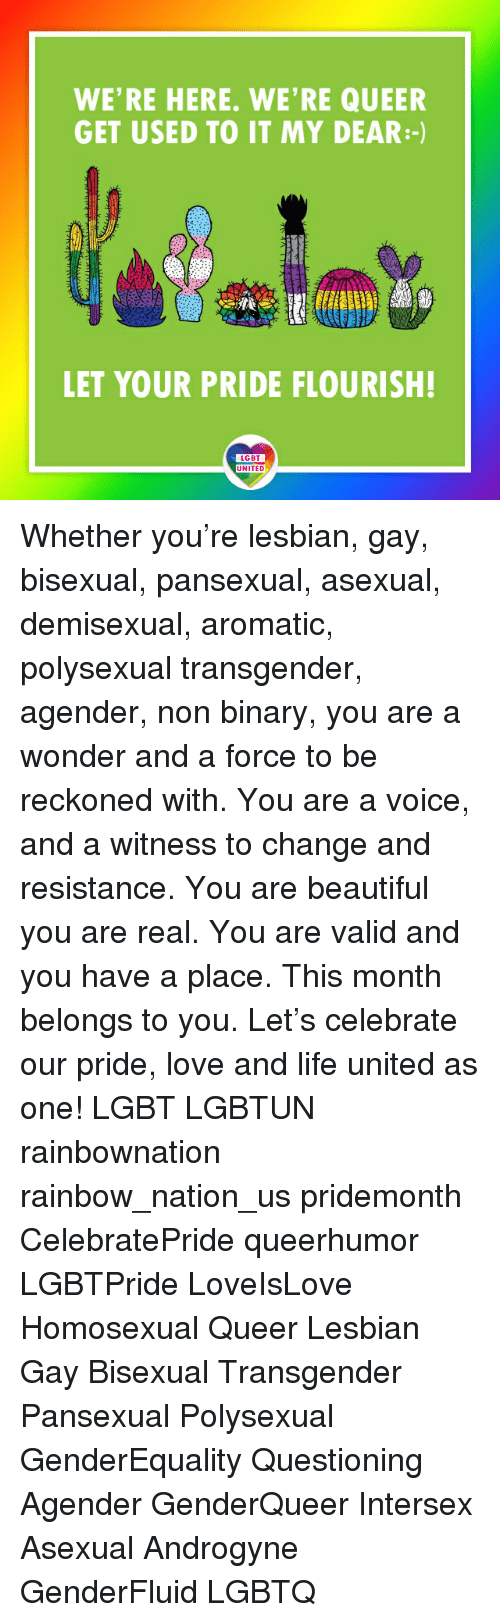 Beautiful, Lgbt, and Life: WE'RE HERE. WE'RE QUEER  GET USED TO IT MY DEAR:-)  LET YOUR PRIDE FLOURISH!  LGBT  UNITED Whether you're lesbian, gay, bisexual, pansexual, asexual, demisexual, aromatic, polysexual transgender, agender, non binary, you are a wonder and a force to be reckoned with. You are a voice, and a witness to change and resistance. You are beautiful you are real. You are valid and you have a place. This month belongs to you. Let's celebrate our pride, love and life united as one! LGBT LGBTUN rainbownation rainbow_nation_us pridemonth CelebratePride queerhumor LGBTPride LoveIsLove Homosexual Queer Lesbian Gay Bisexual Transgender Pansexual Polysexual GenderEquality Questioning Agender GenderQueer Intersex Asexual Androgyne GenderFluid LGBTQ